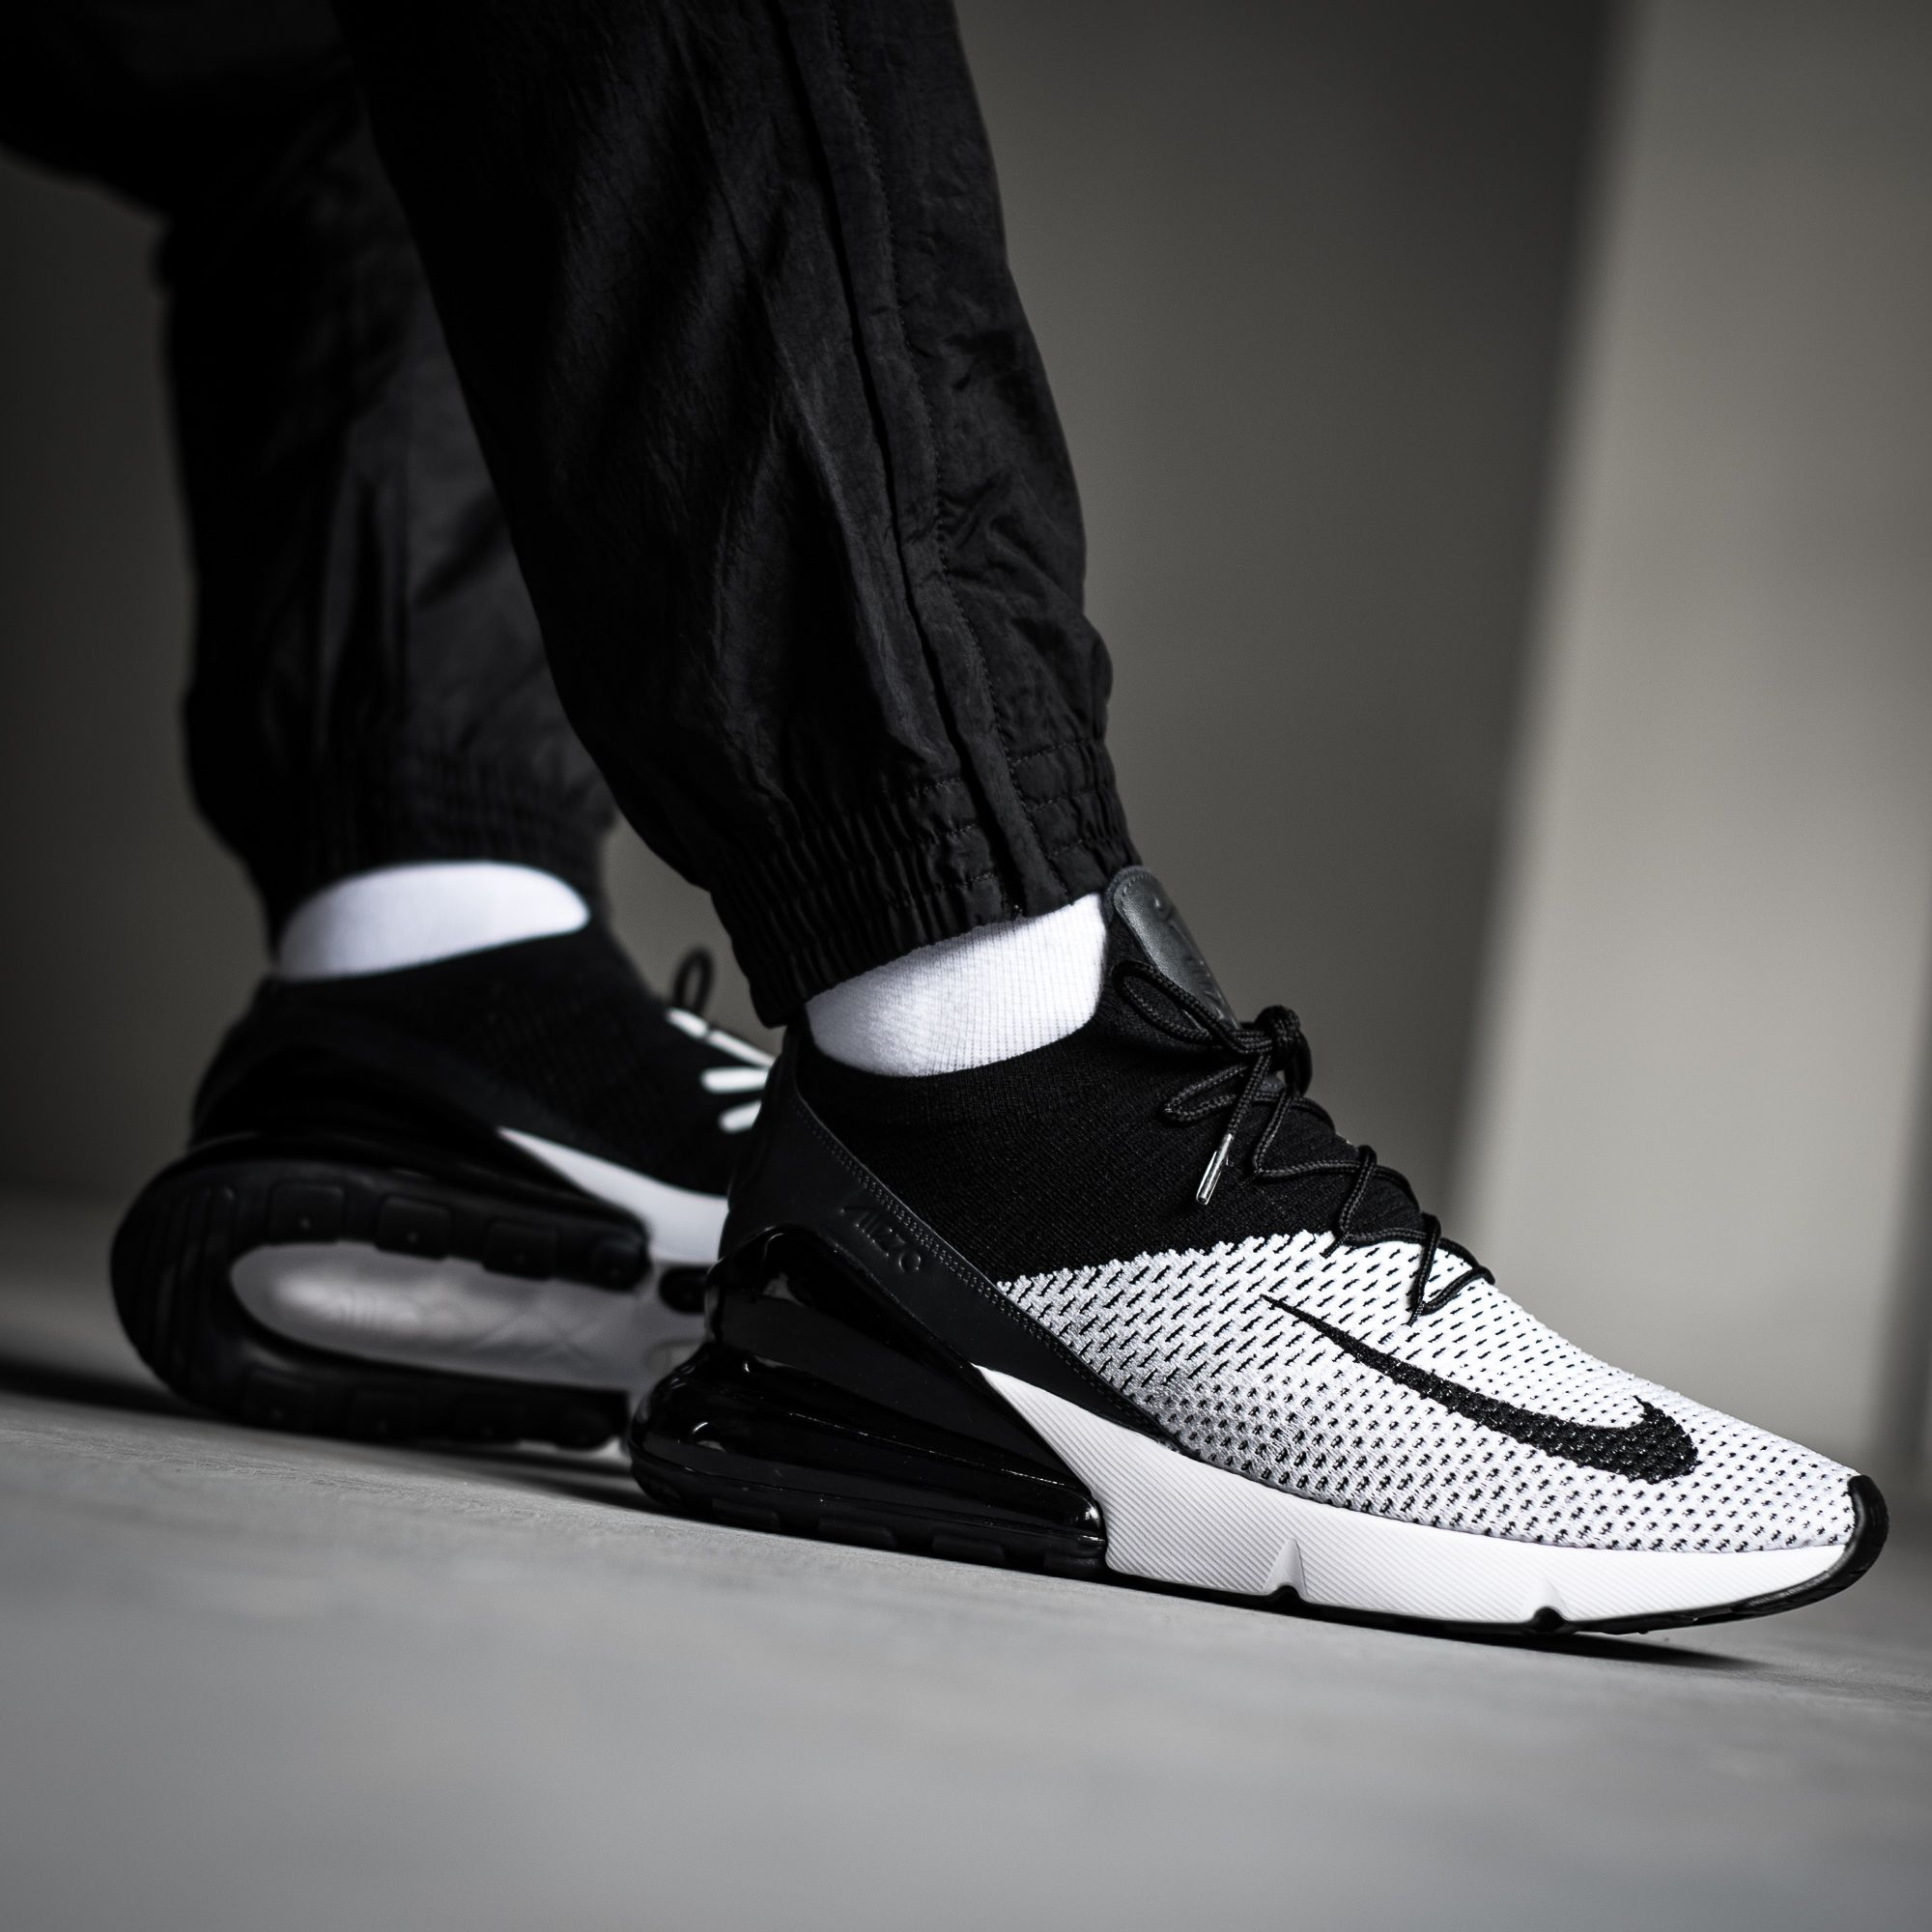 buy popular 931e1 e4774 The brand-new NIKE AIR MAX 270 FLYKNIT in a white black-anthracite  colorway! Get yours on kickz.com!